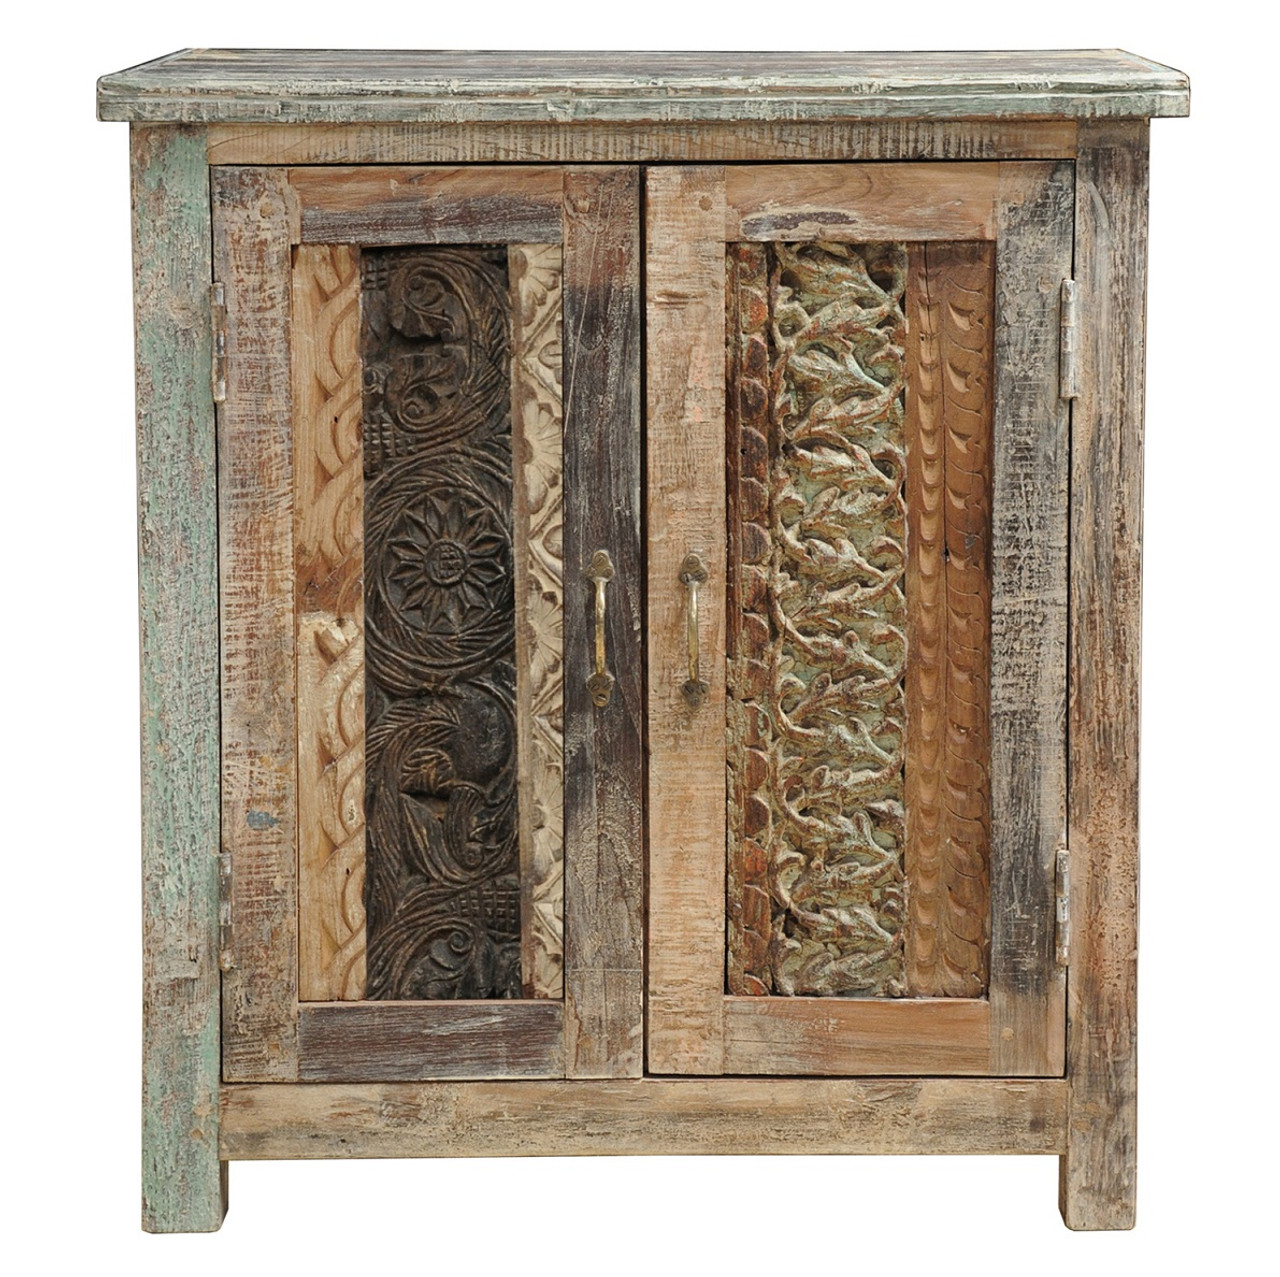 Incroyable Carved Wood Block Cabinet